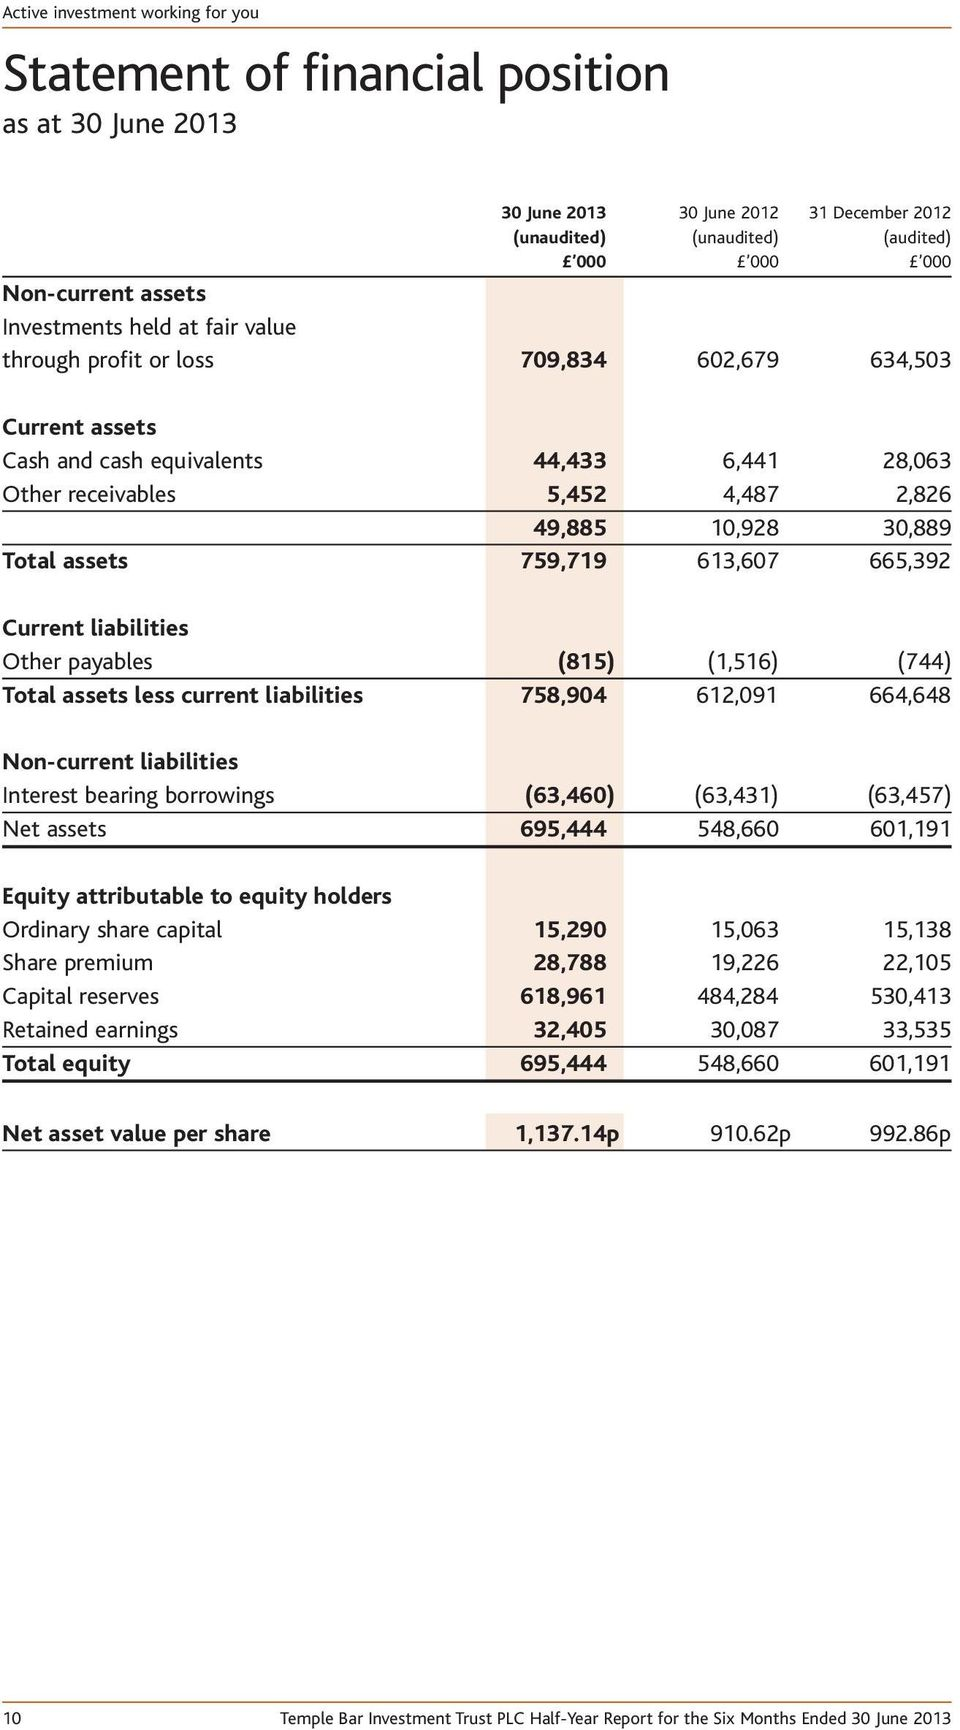 Current liabilities Other payables (815) (1,516) (744) Total assets less current liabilities 758,904 612,091 664,648 Non-current liabilities Interest bearing borrowings (63,460) (63,431) (63,457) Net